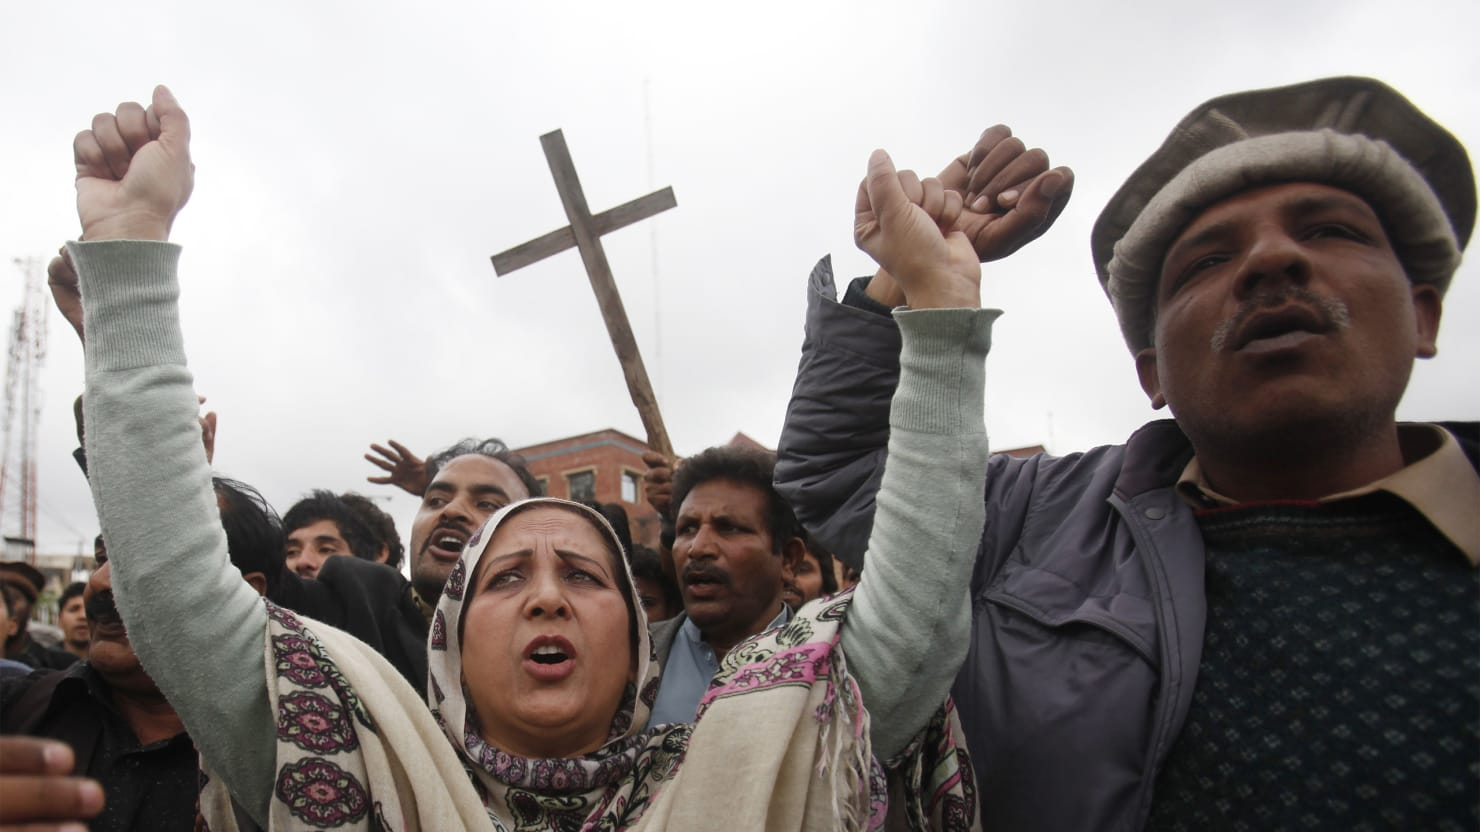 Christians Are Still Persecuted Around the World. Here's Where.